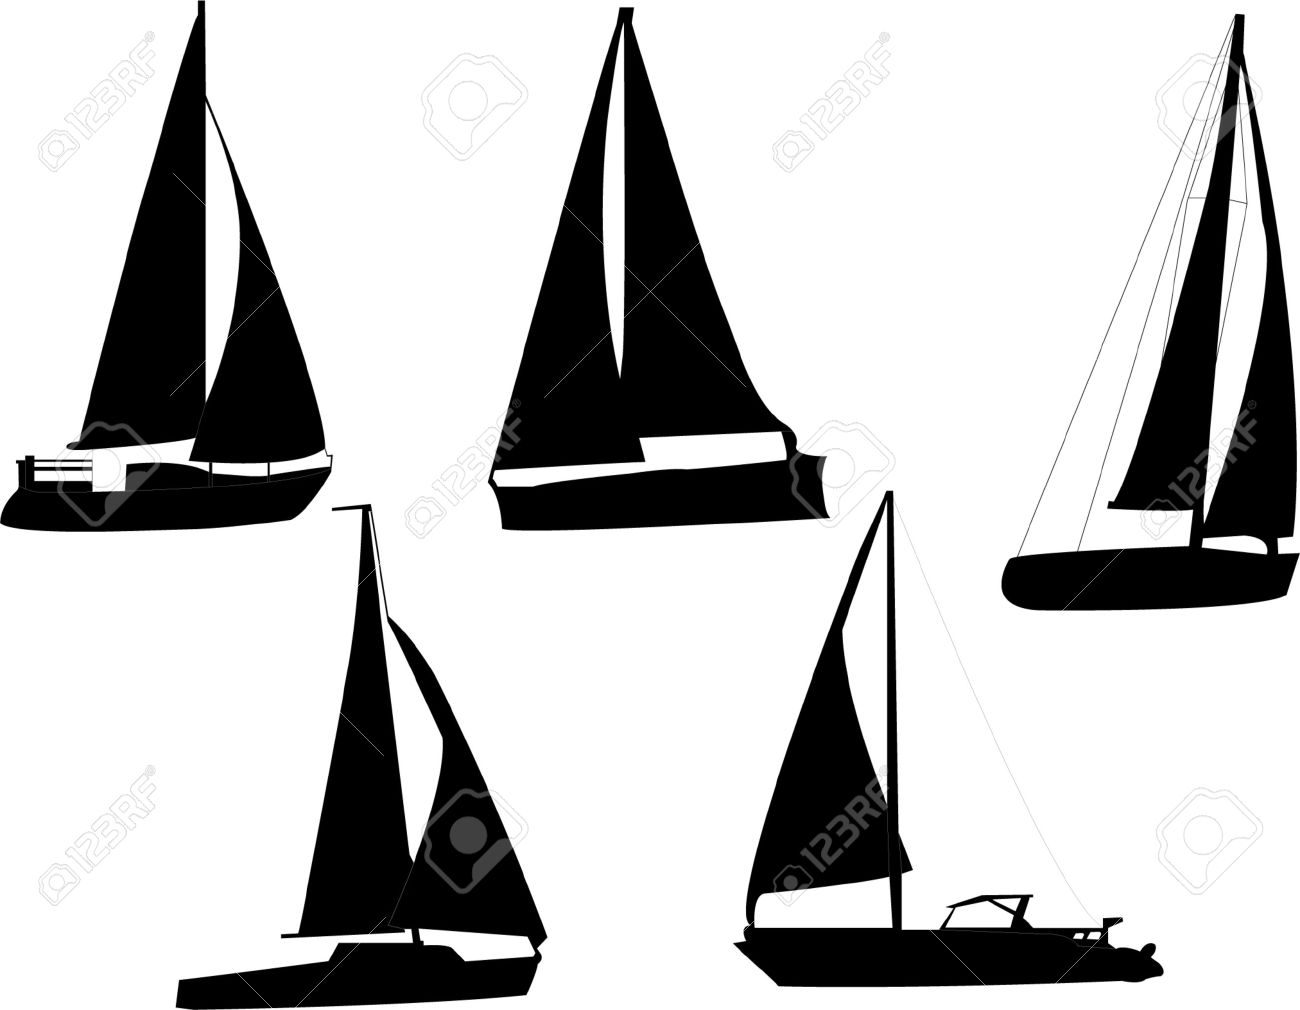 sail boats silhouette Stock Vector - 8094965